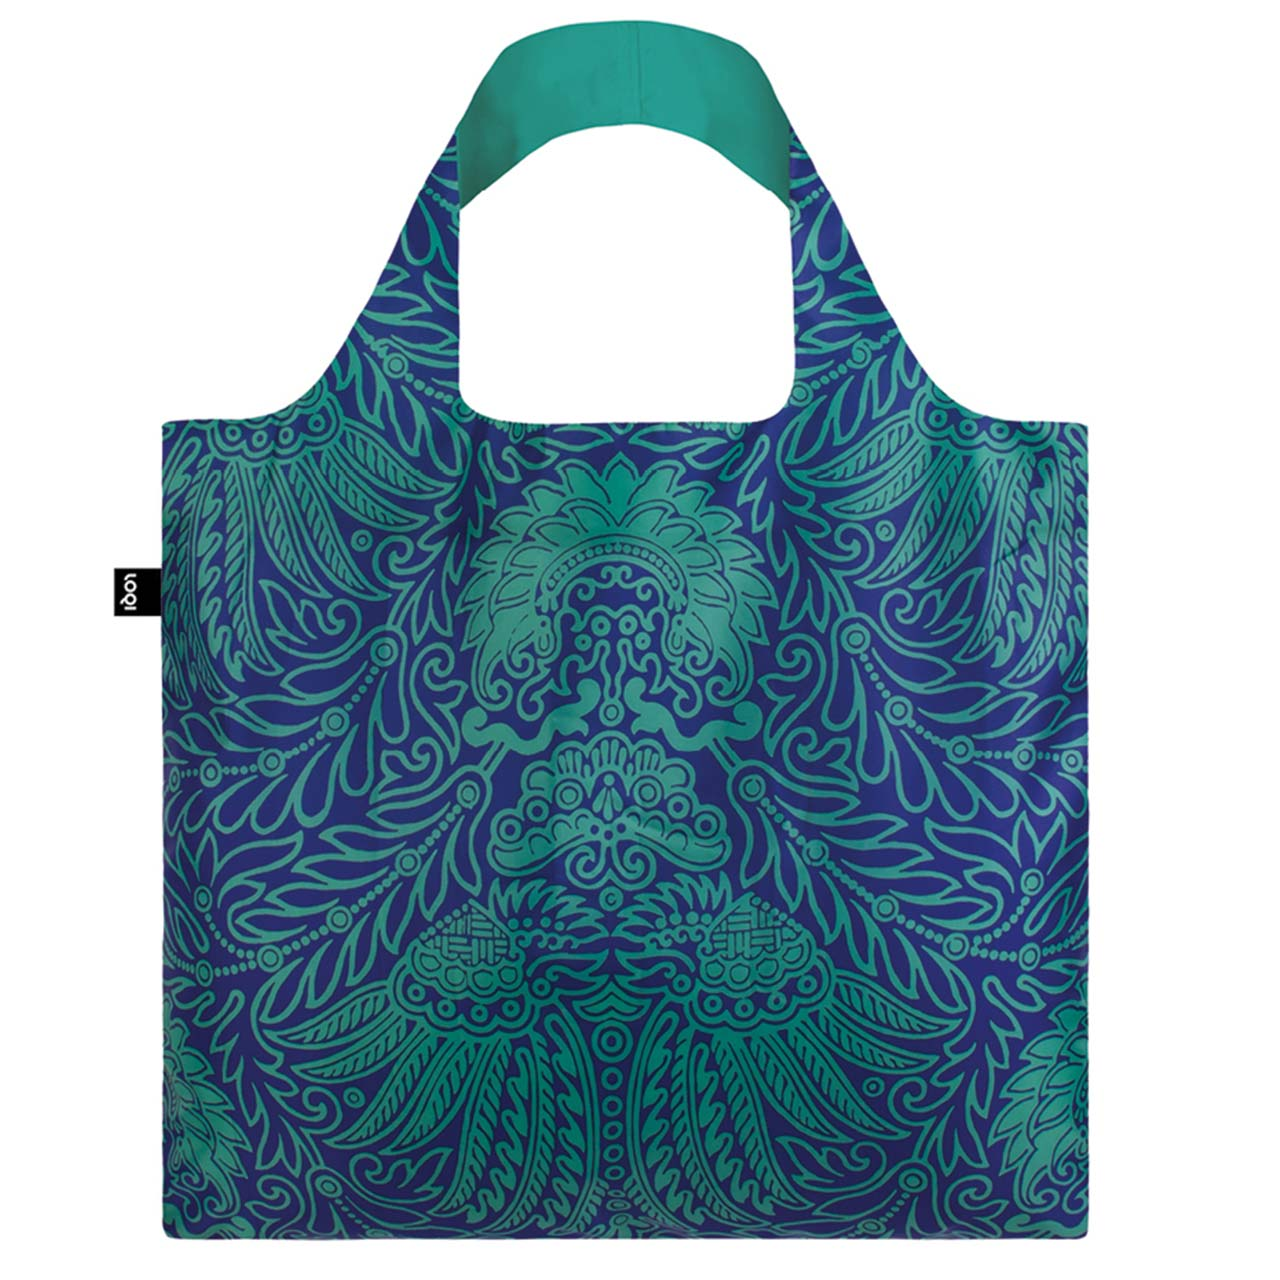 LOQI bag featuring turquoise and blue intricate Japanese decor.